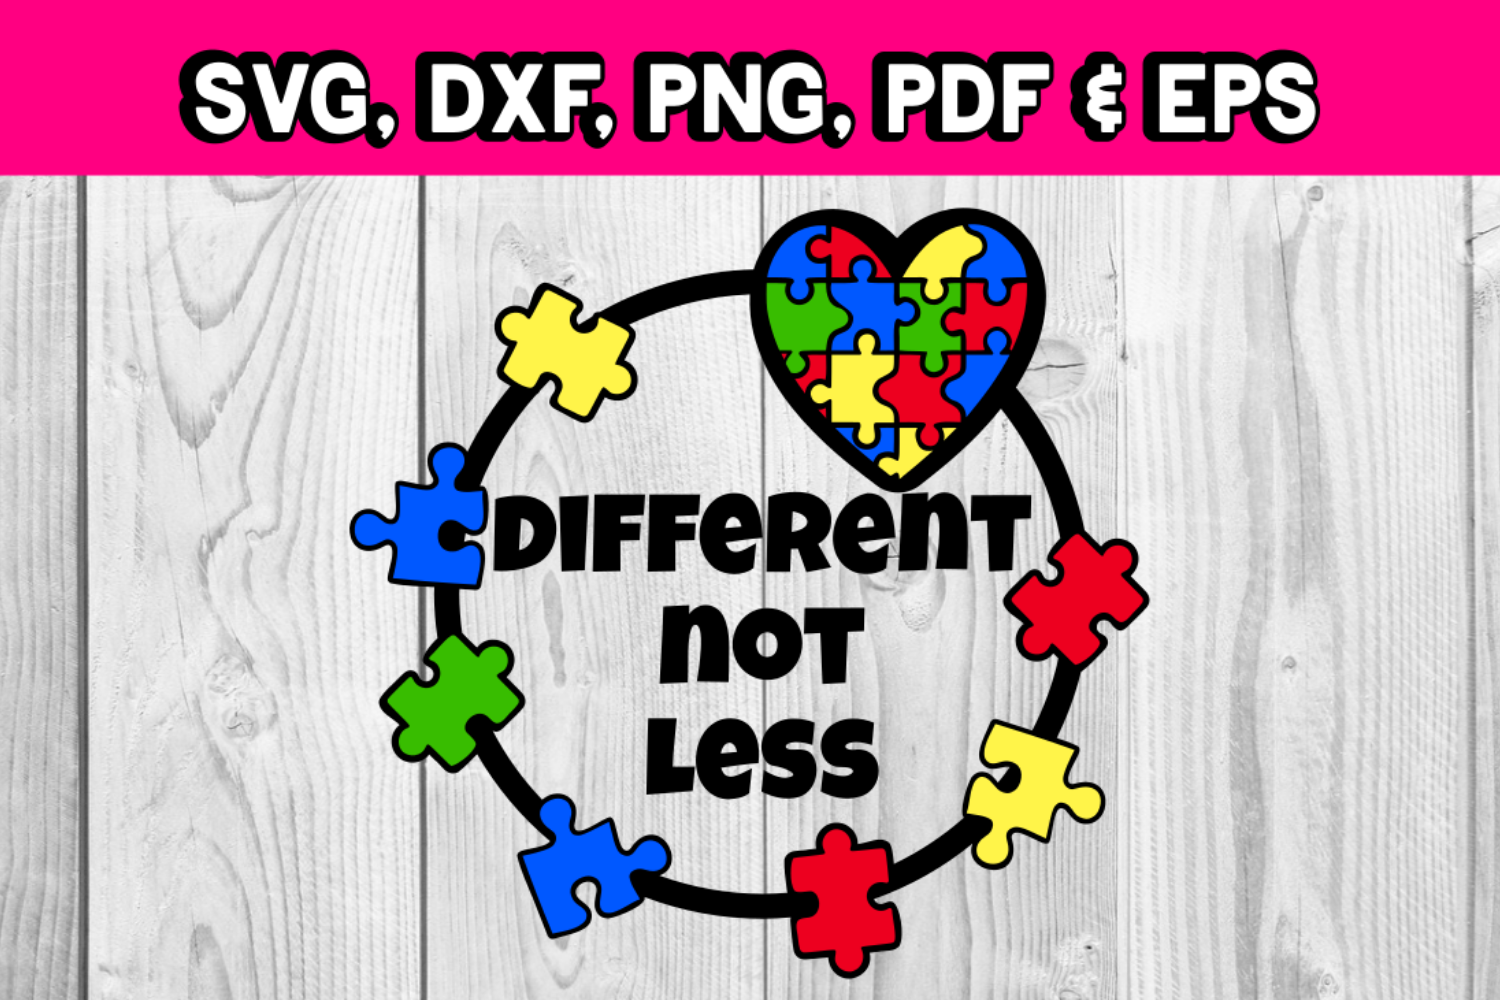 Autism awareness - Different not less - puzzle pieces svg example image 1